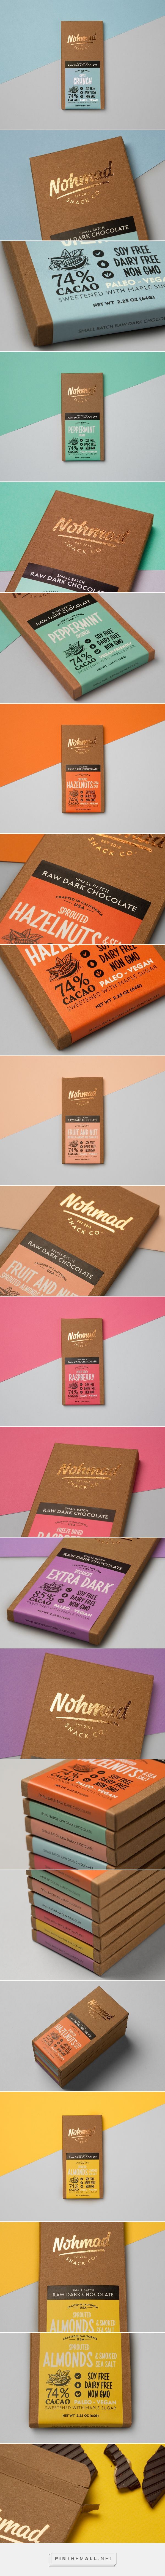 Nohmad Chocolates